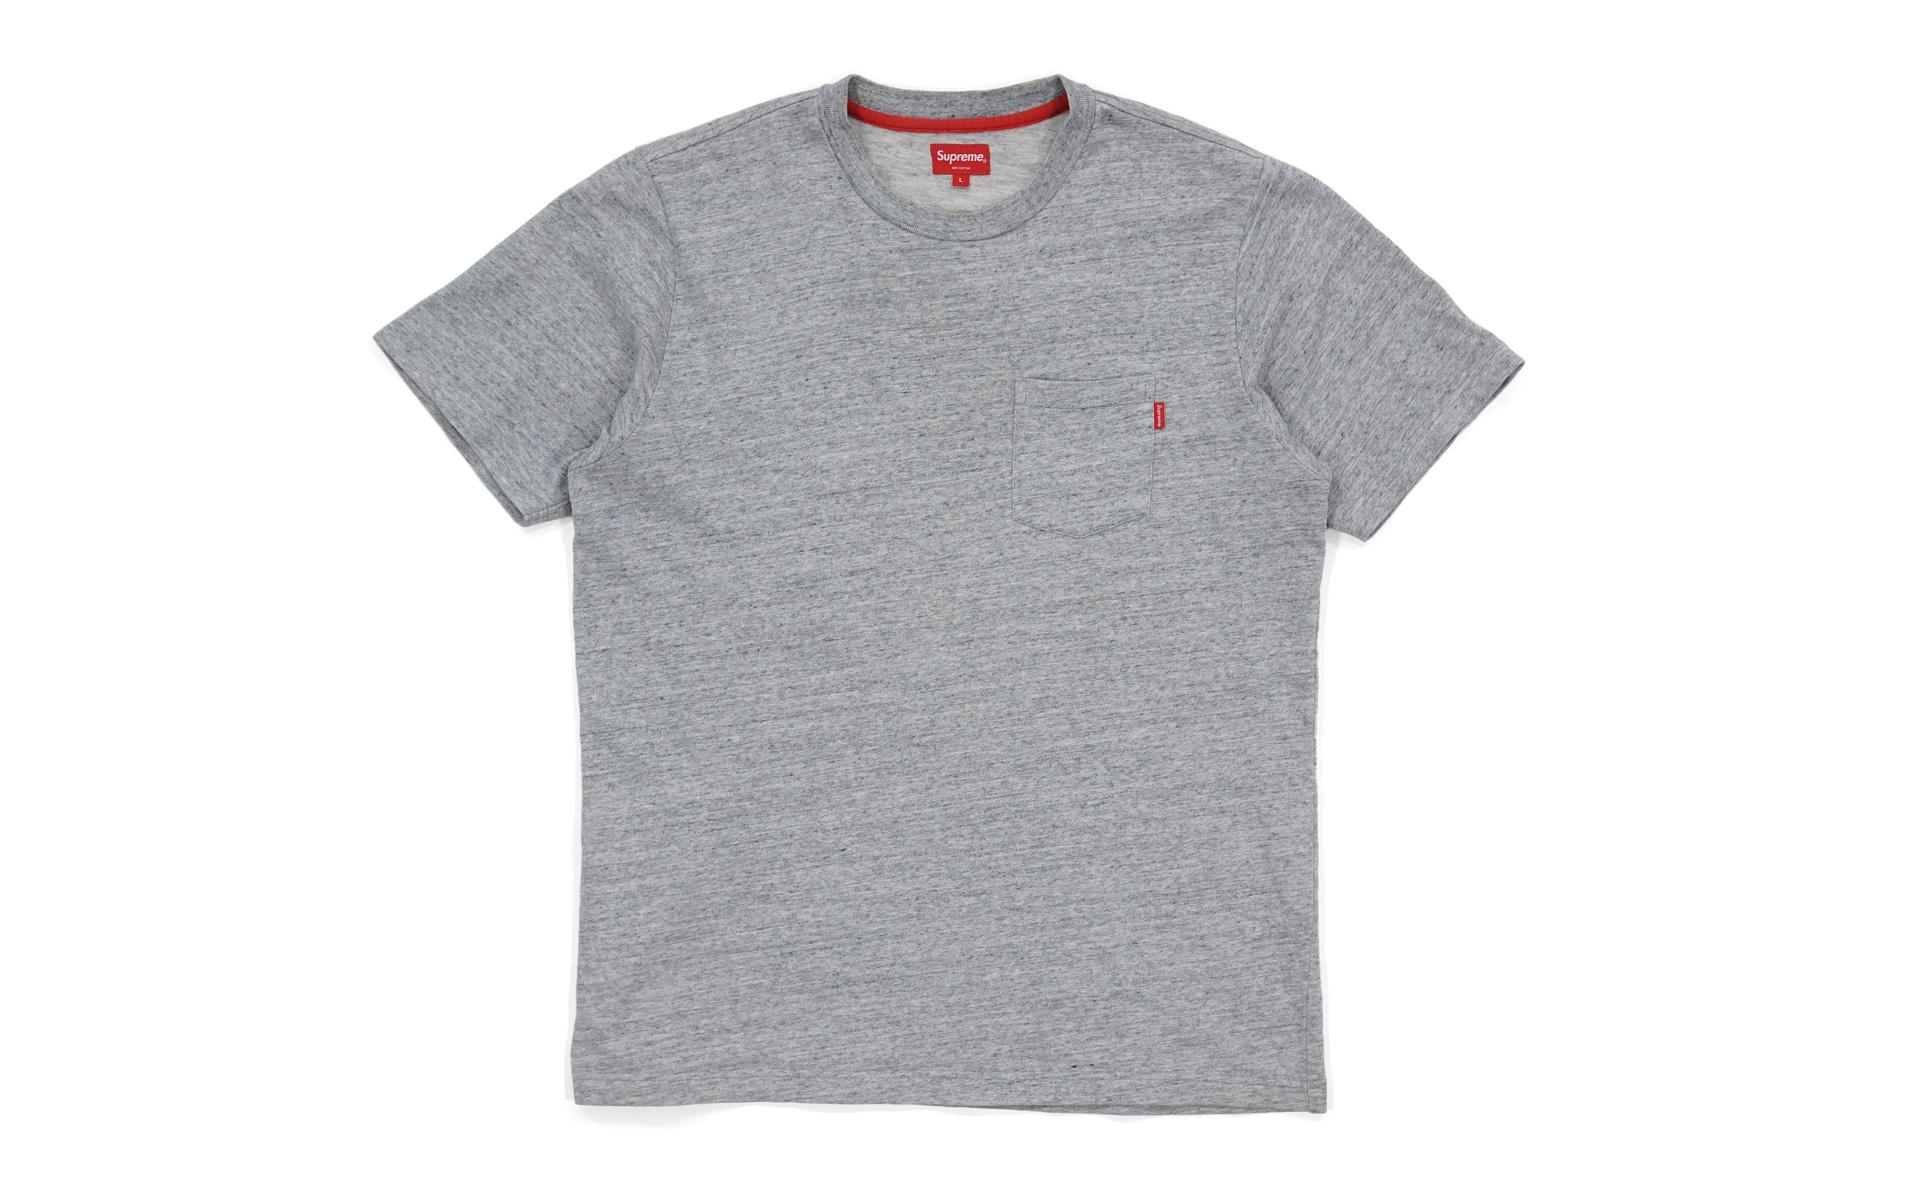 8f862769a81 Lyst - Supreme Pocket Tee (ss18) Heather Grey in Gray for Men